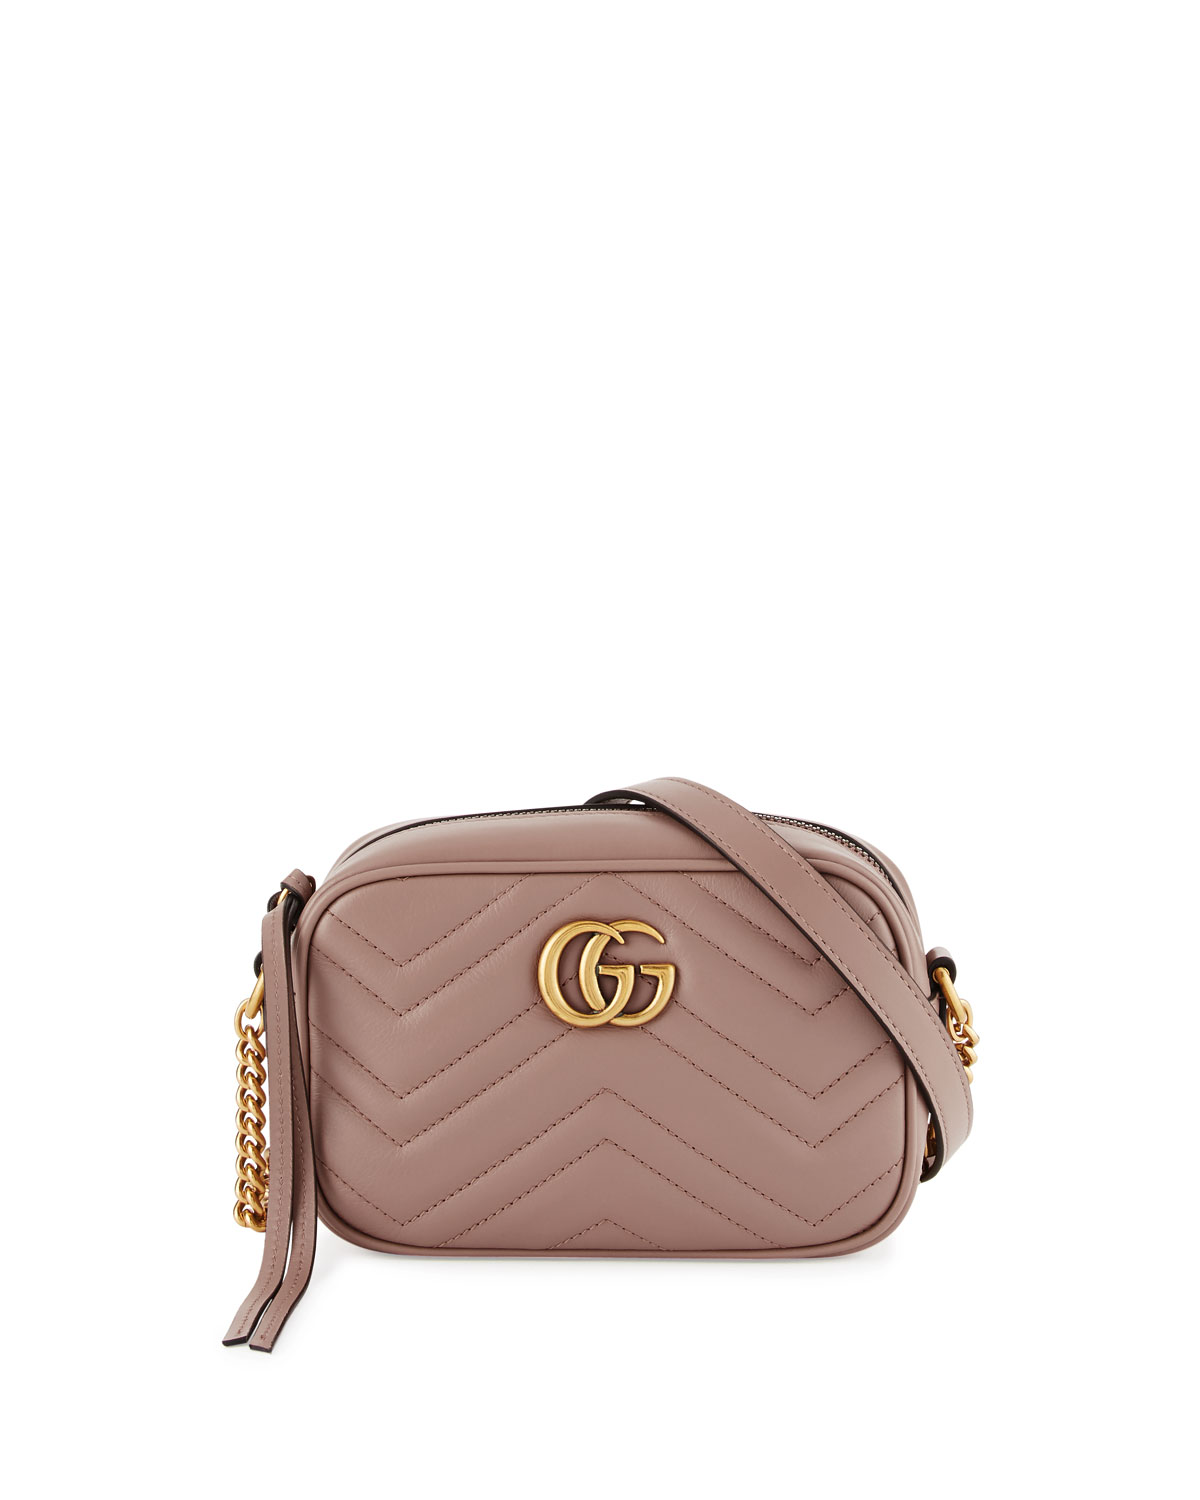 b18d30086b2f Gucci GG Marmont Mini Matelasse Camera Bag